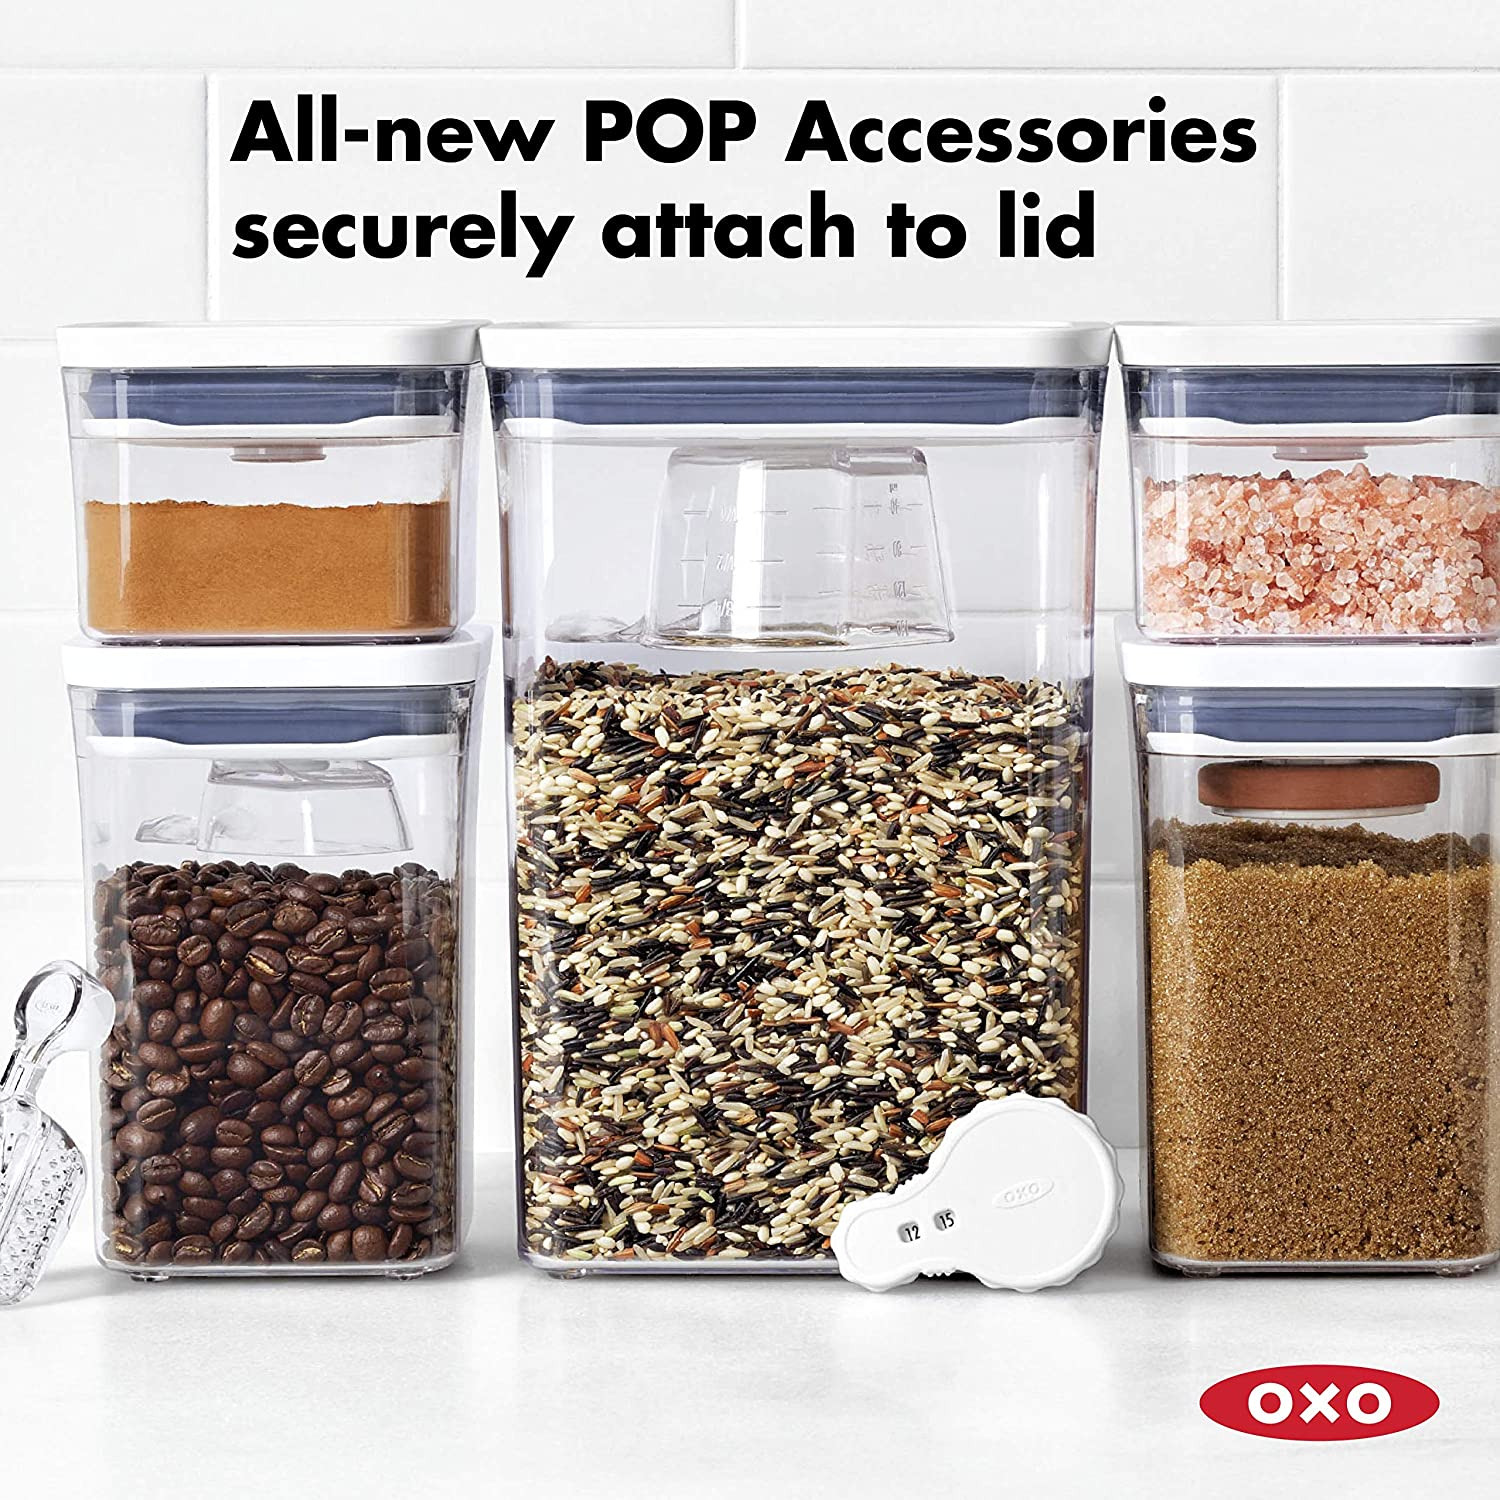 Oxo Good Grips POP Food Storage Containers Review